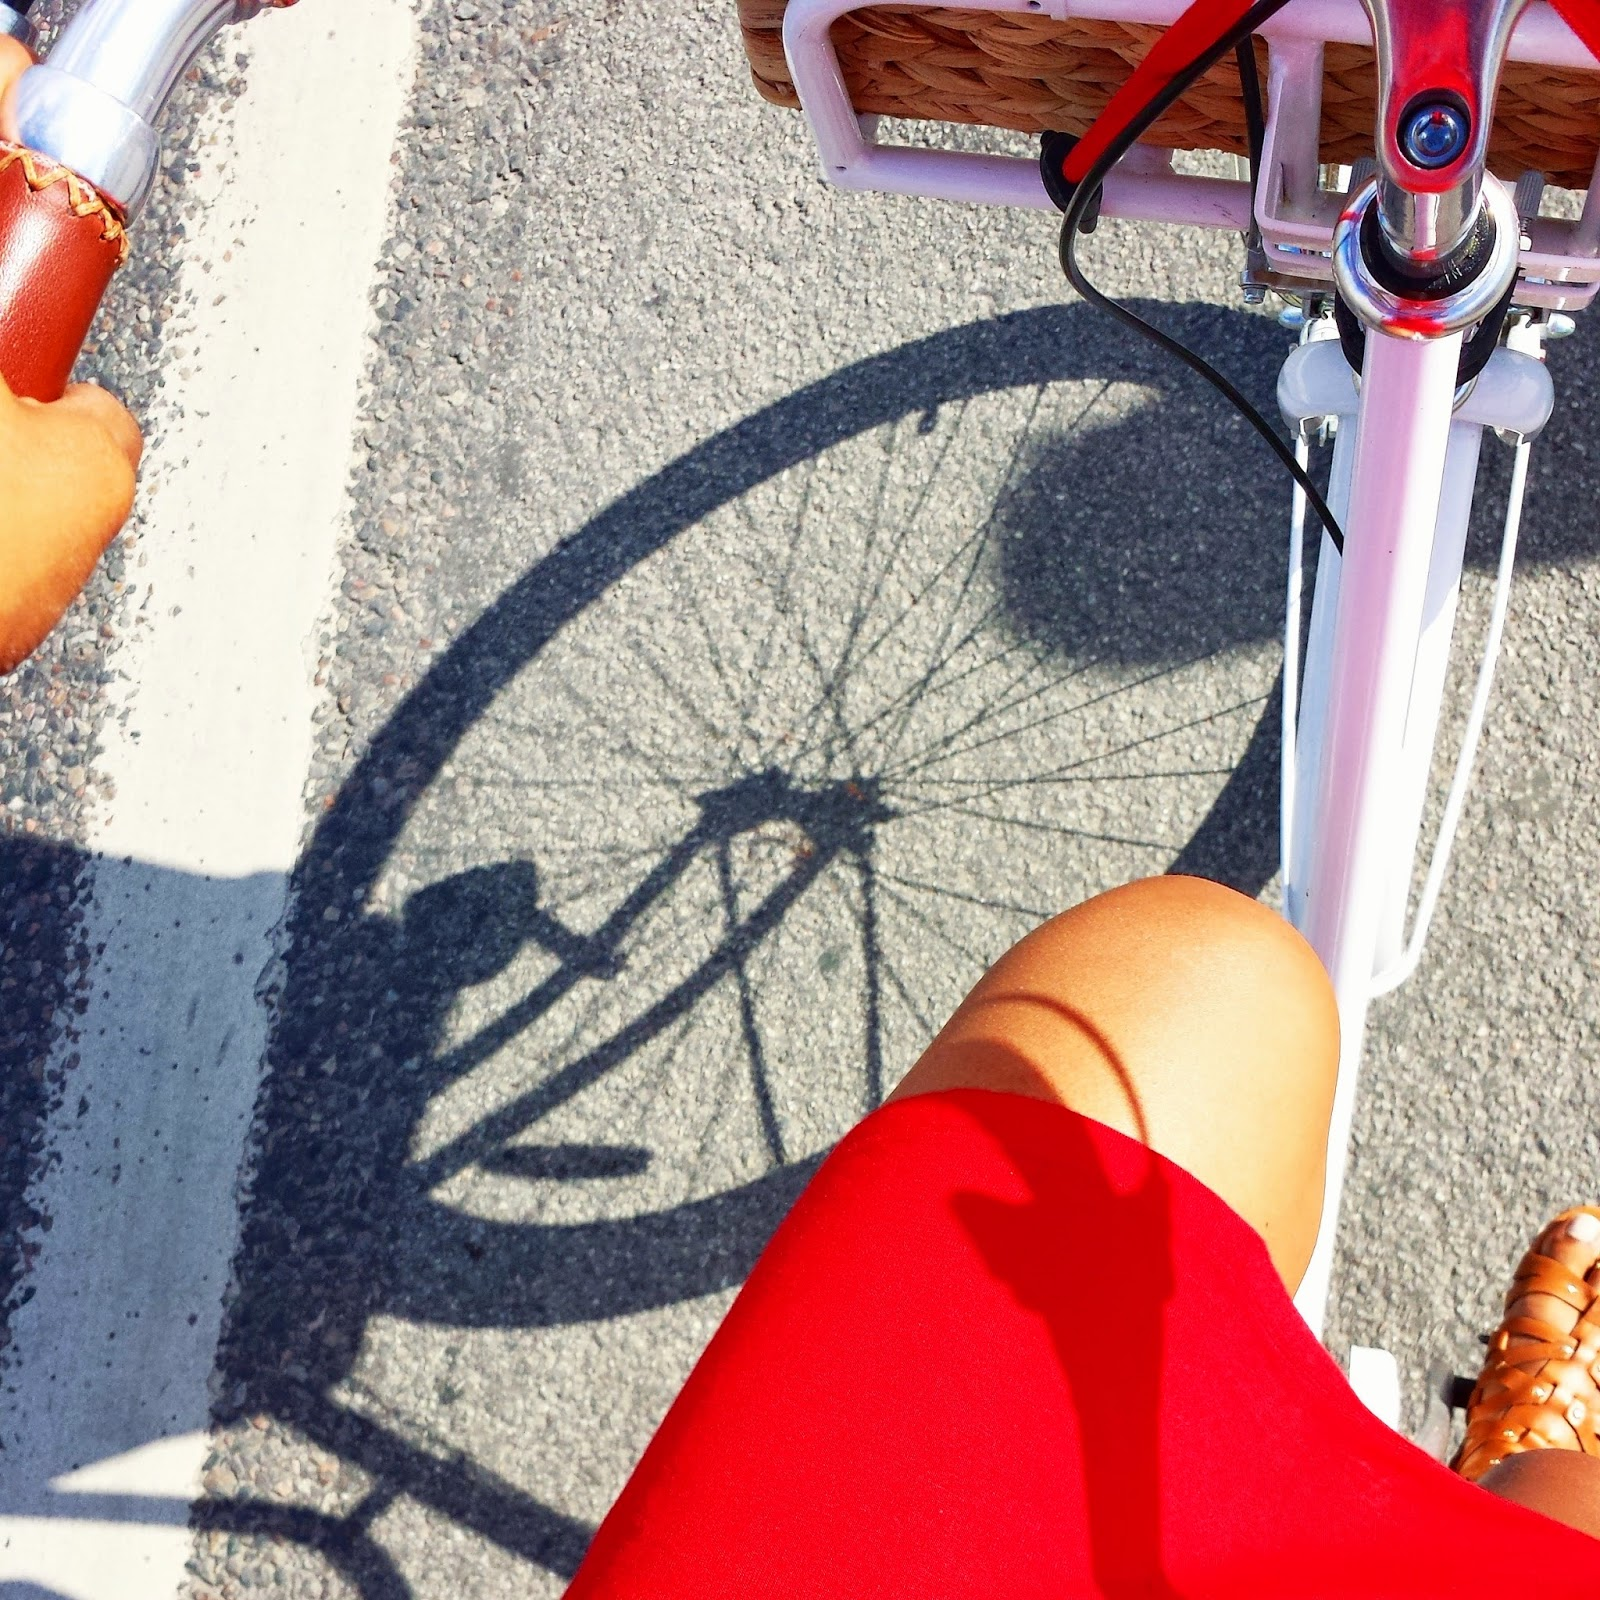 Riding my Stålhästen in red  |  Our first July 4th abroad on afeathery*nest  |  http://afeatherynest.blogspot.com